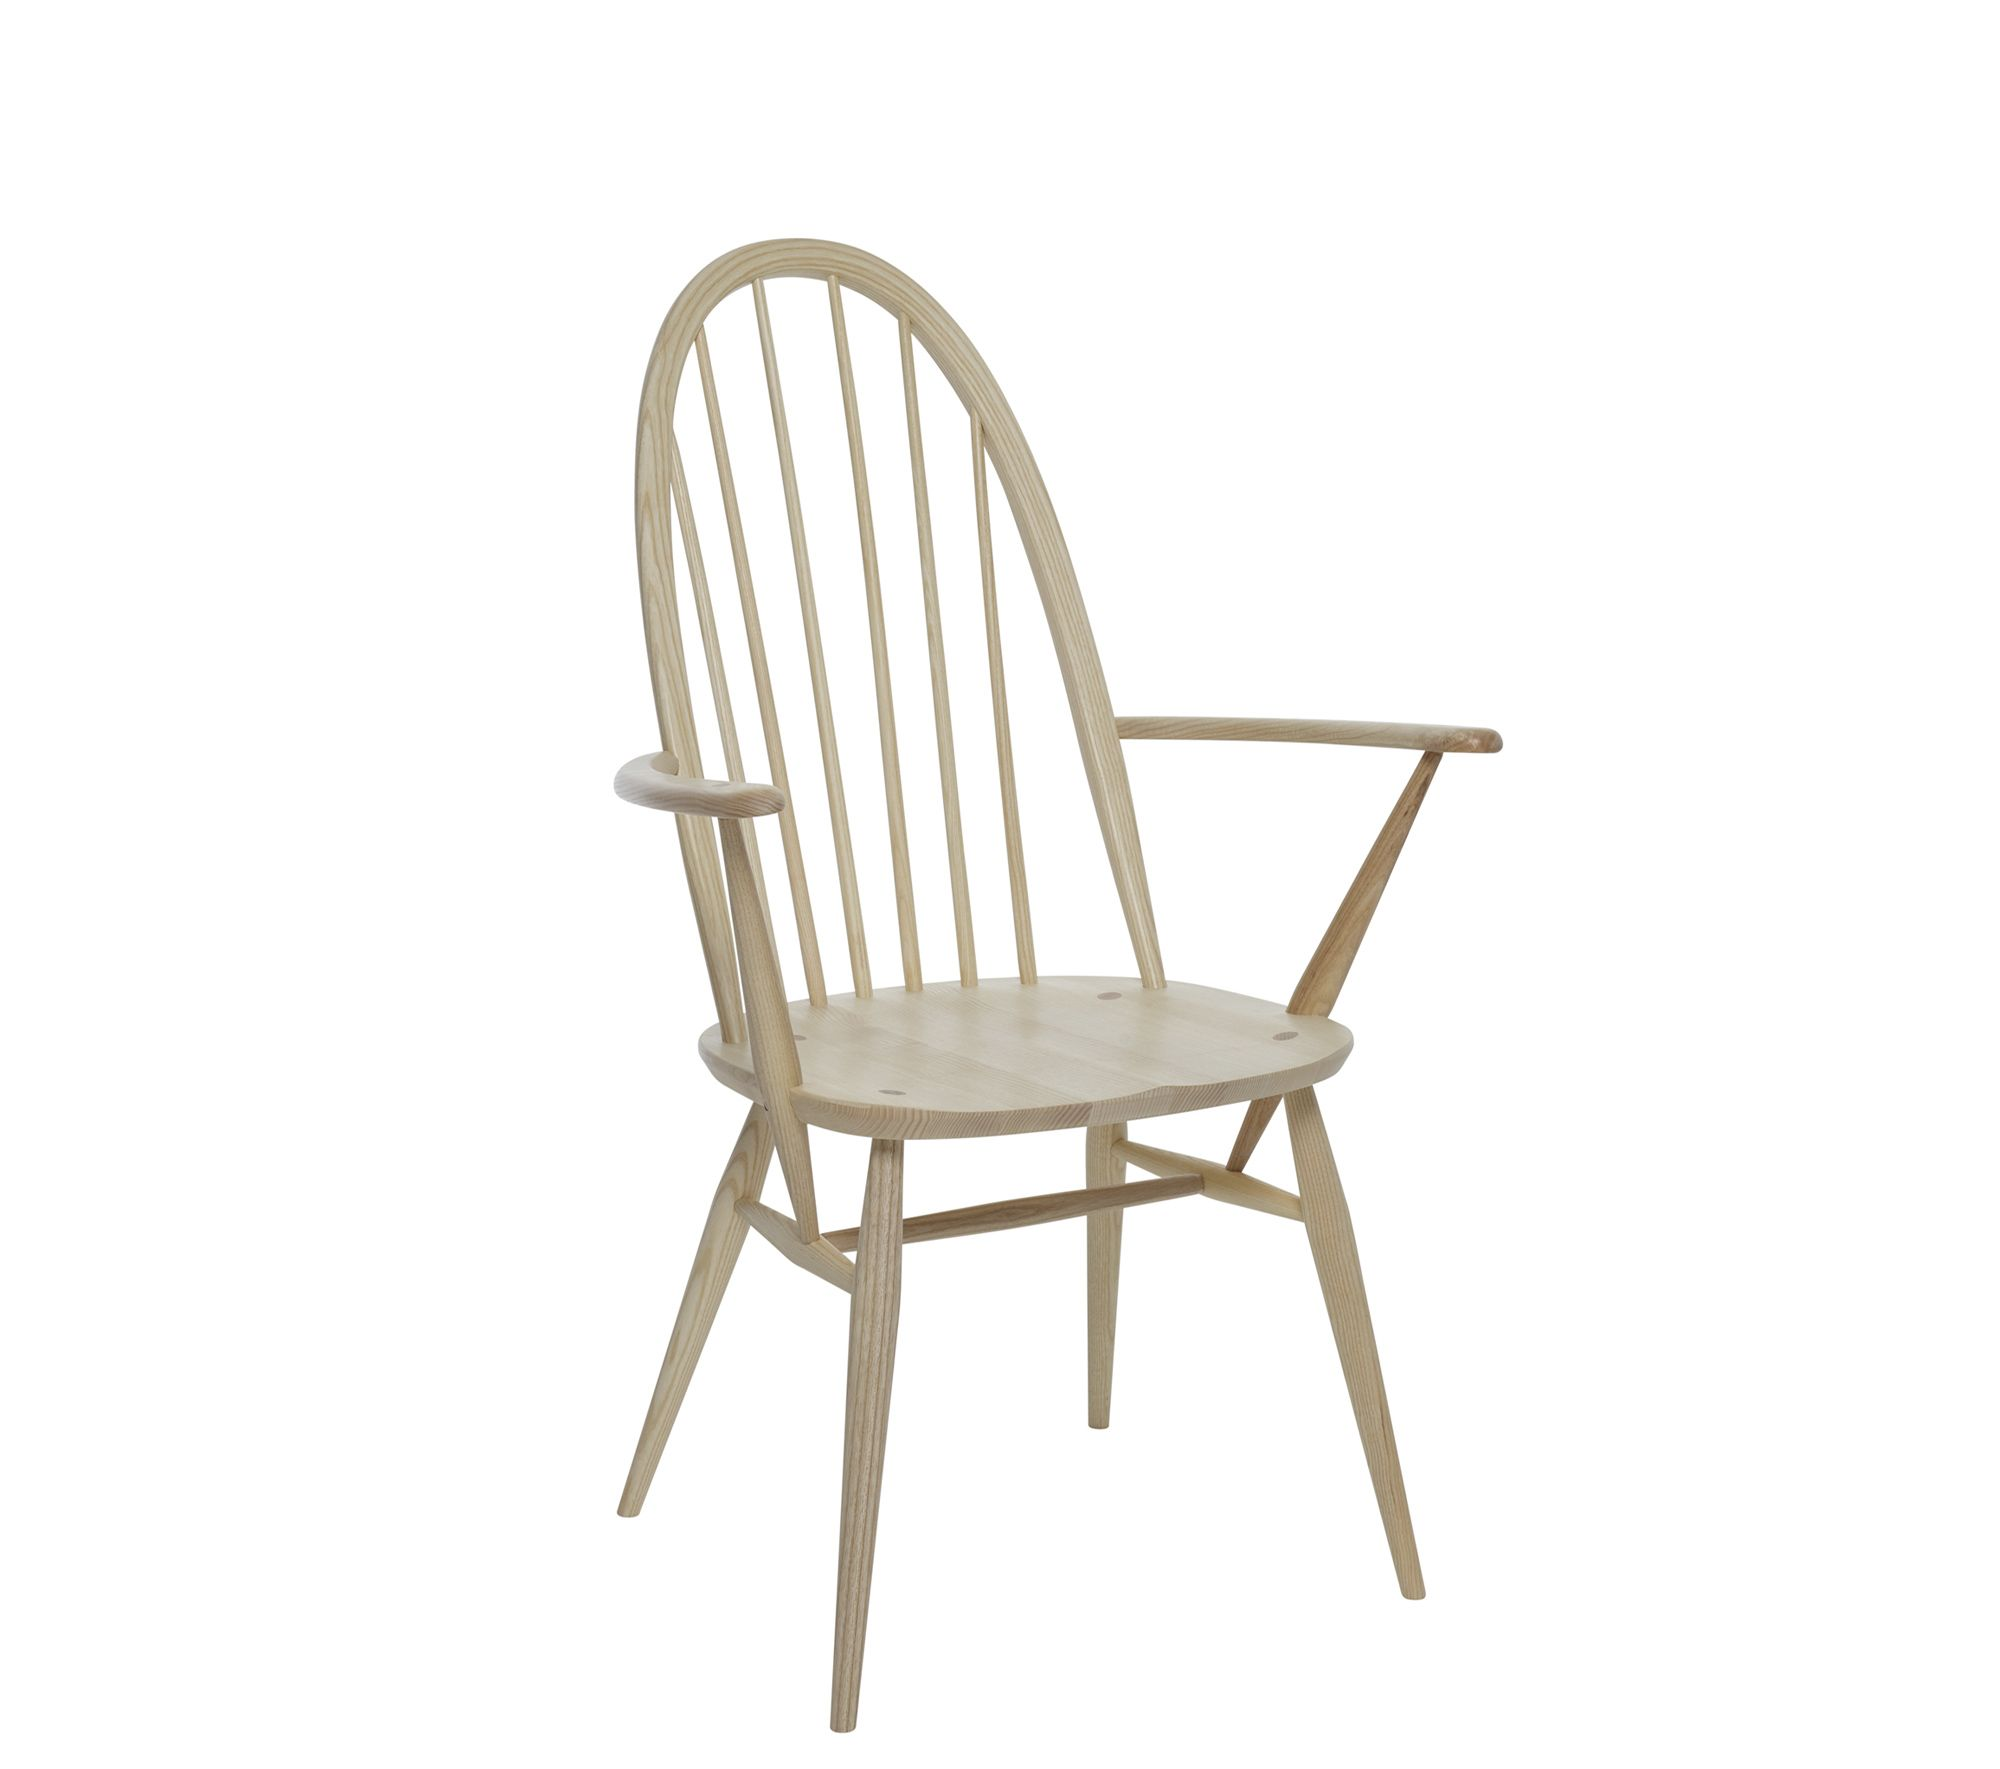 Originals Ercol Dining Chairs Dining Arm Chair Contemporary